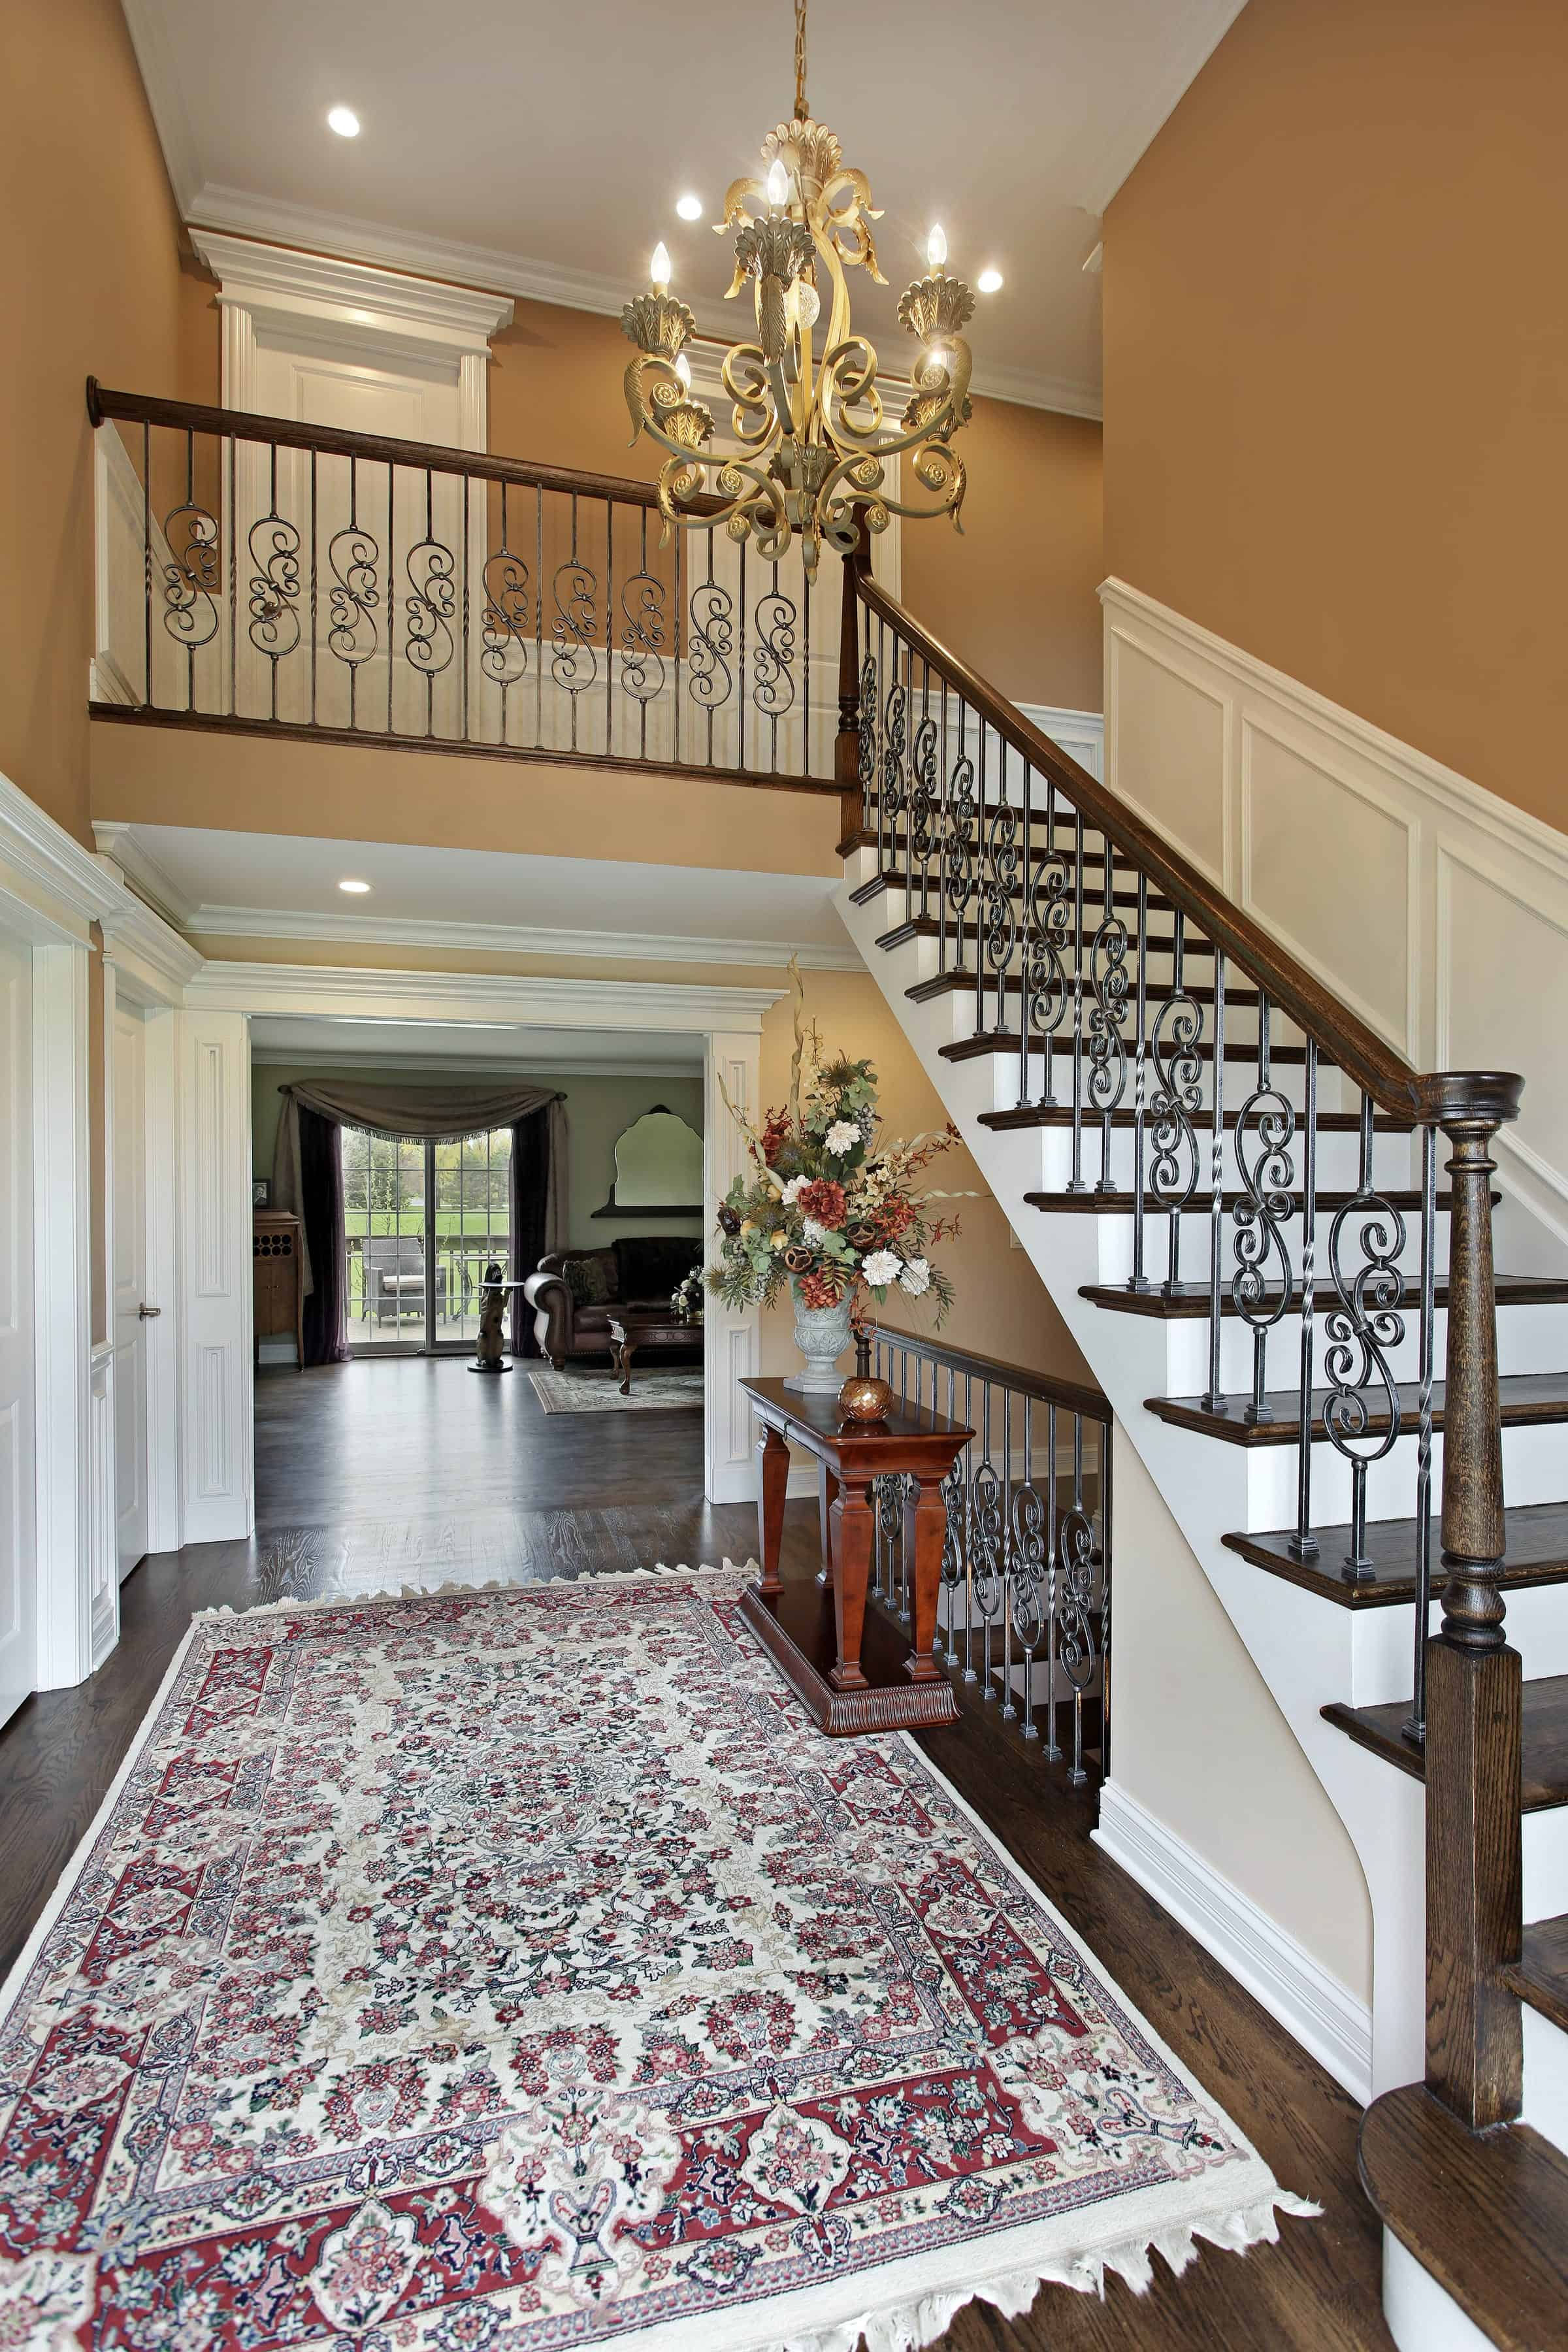 Large classy foyer with a hardwood flooring topped by a colorful rug. The beige walls mixes well with the white details of the home.